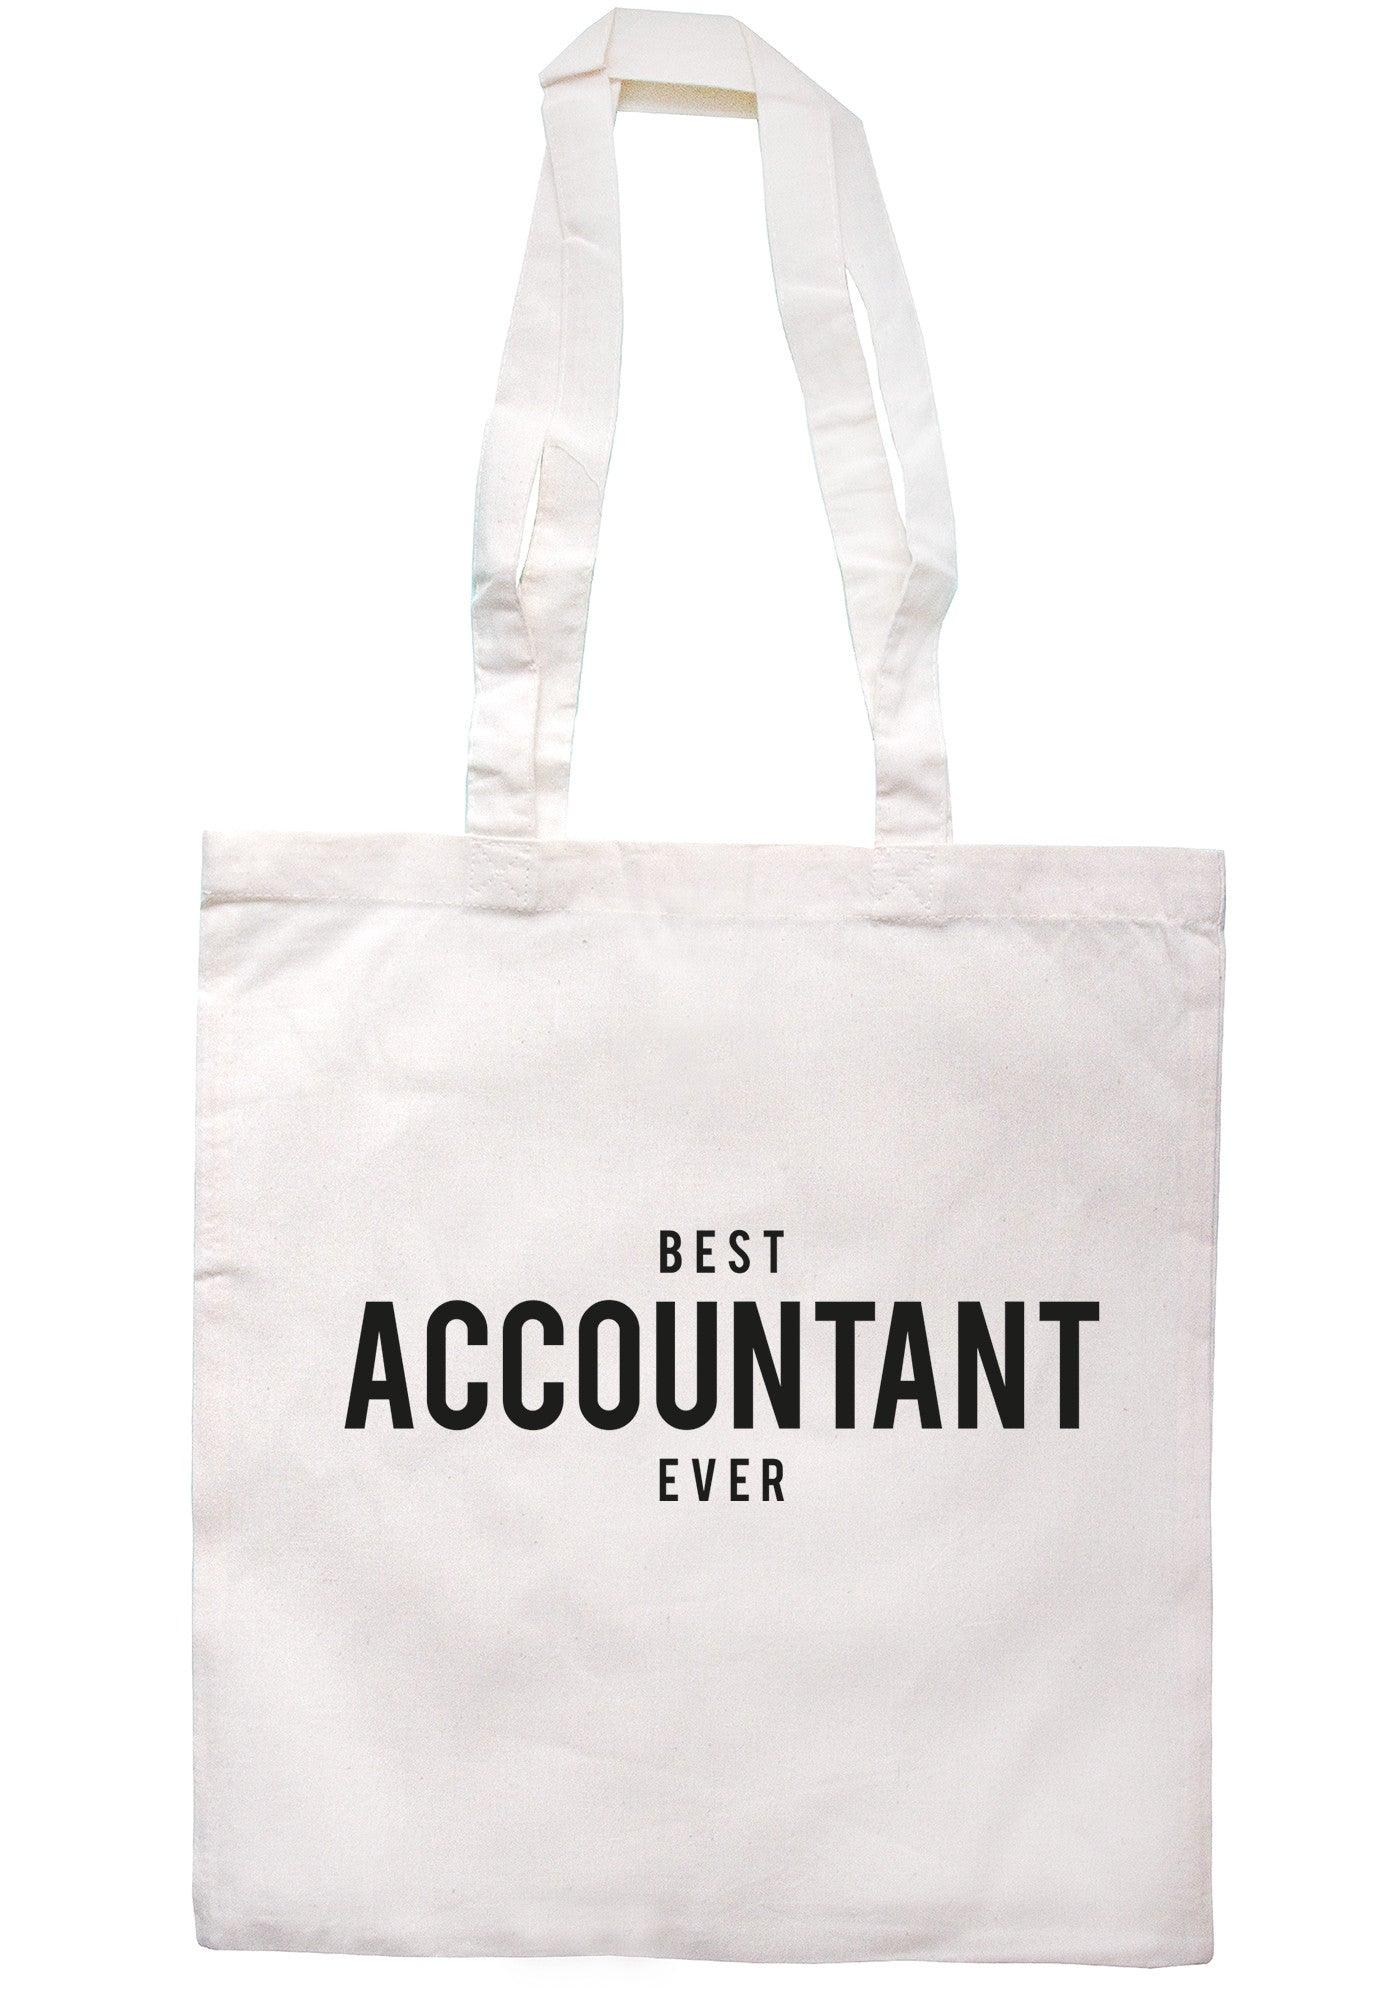 Best Accountant Ever Tote Bag TB1309